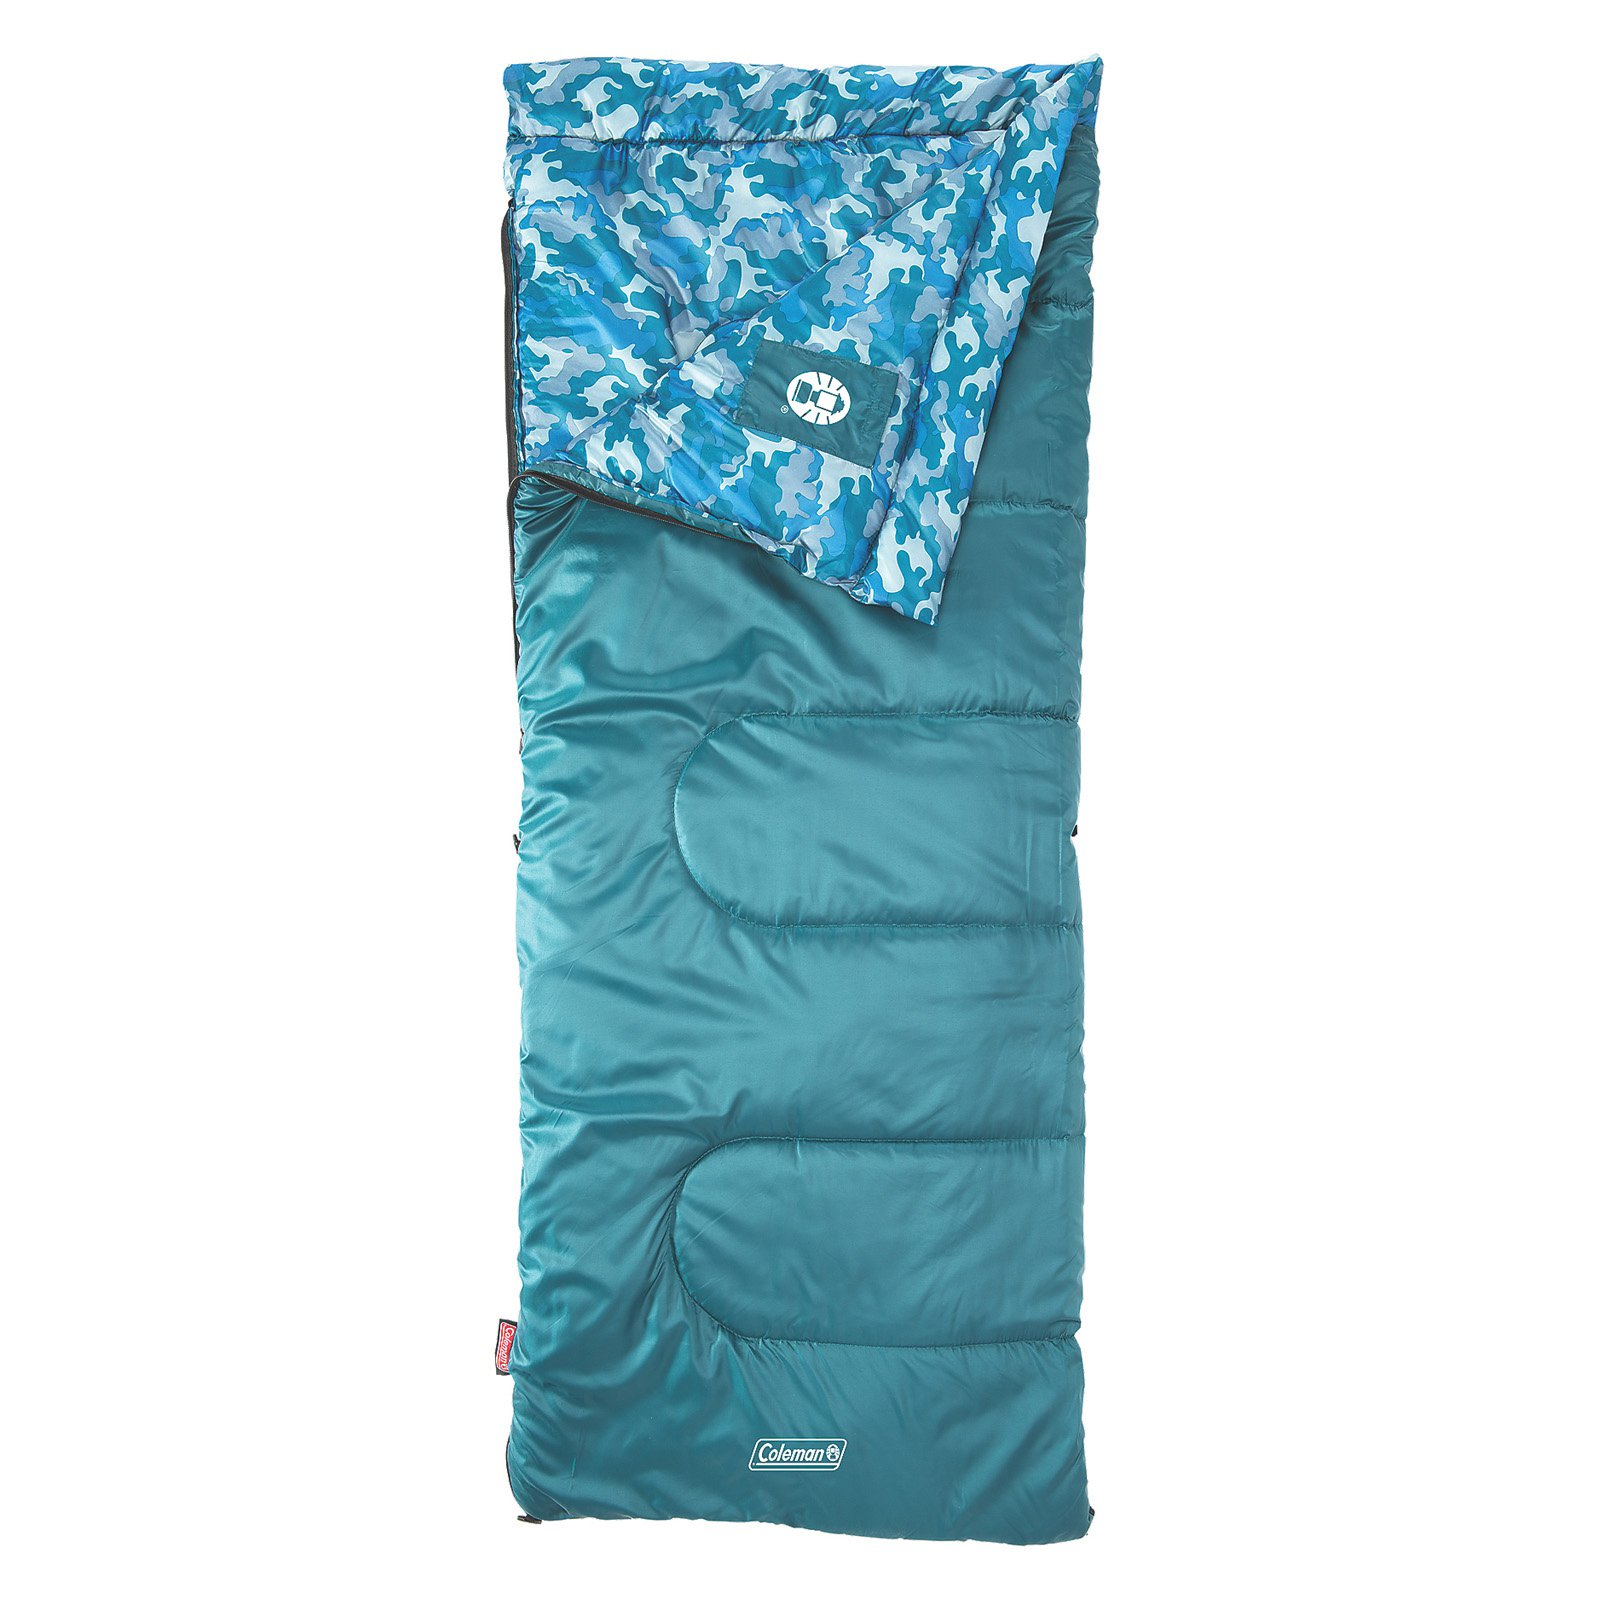 Coleman Youth Sleeping Bag by COLEMAN